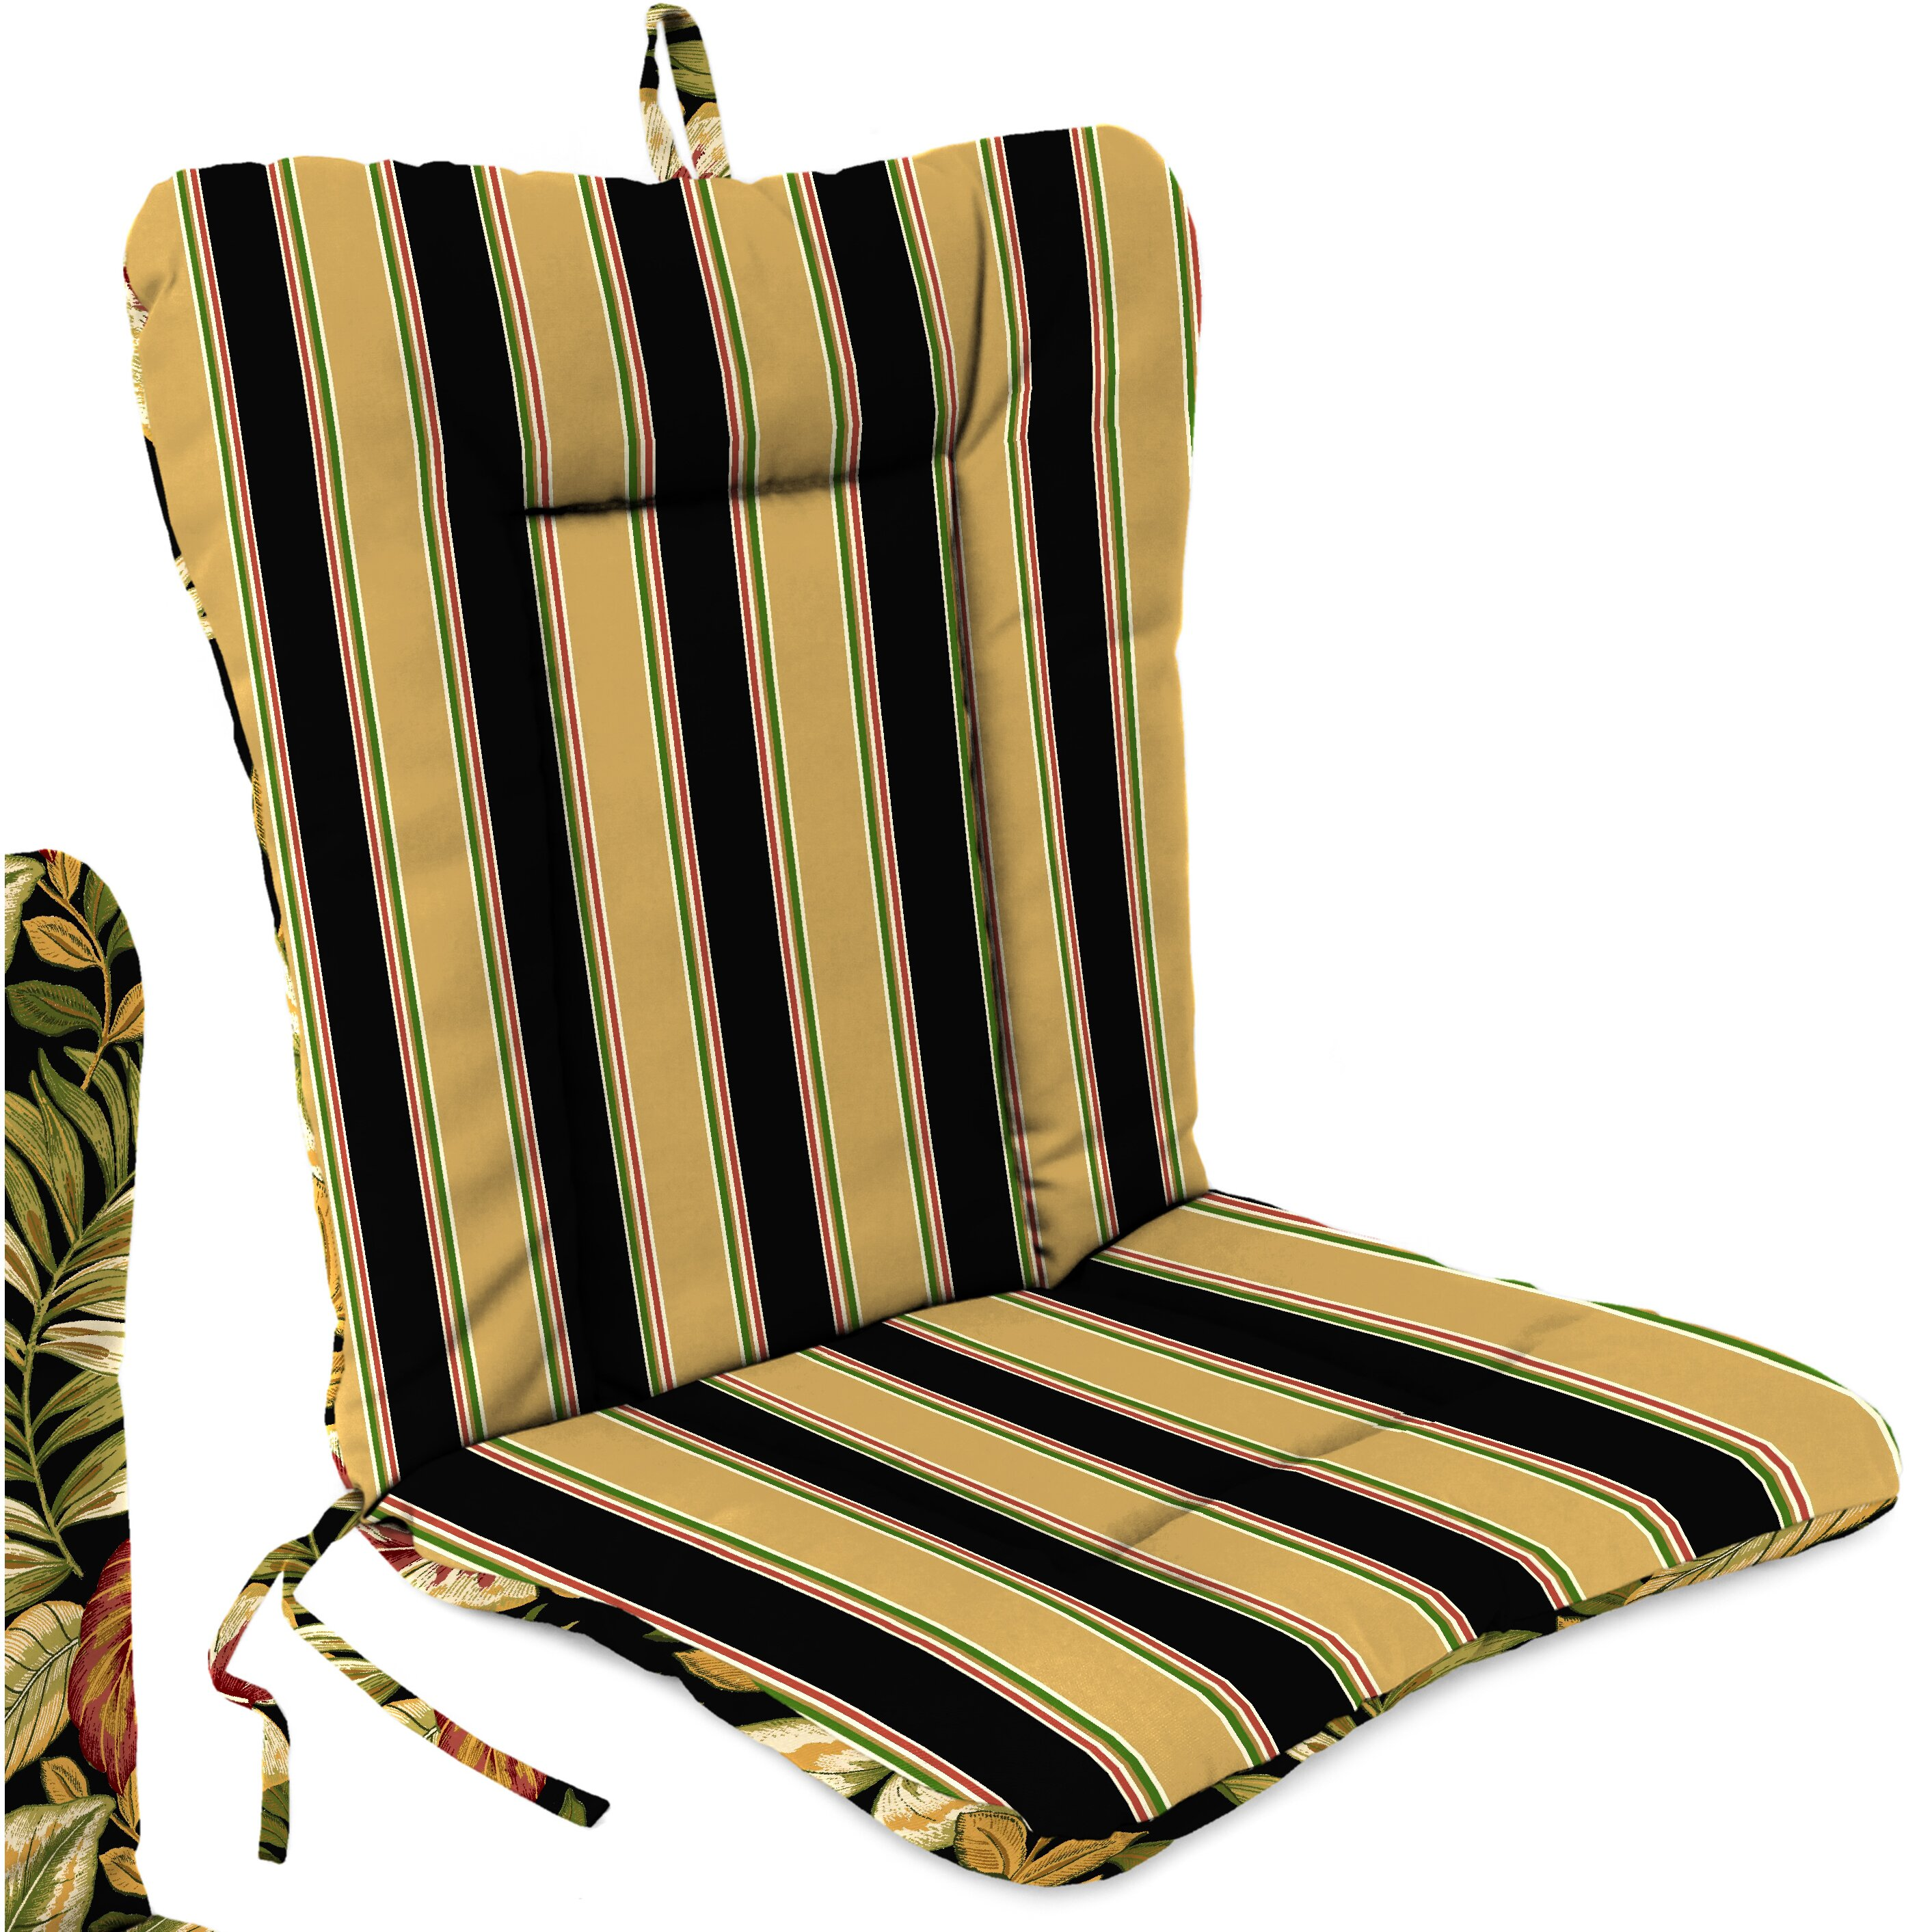 Jordan Manufacturing Outdoor Adirondack Chair Cushion